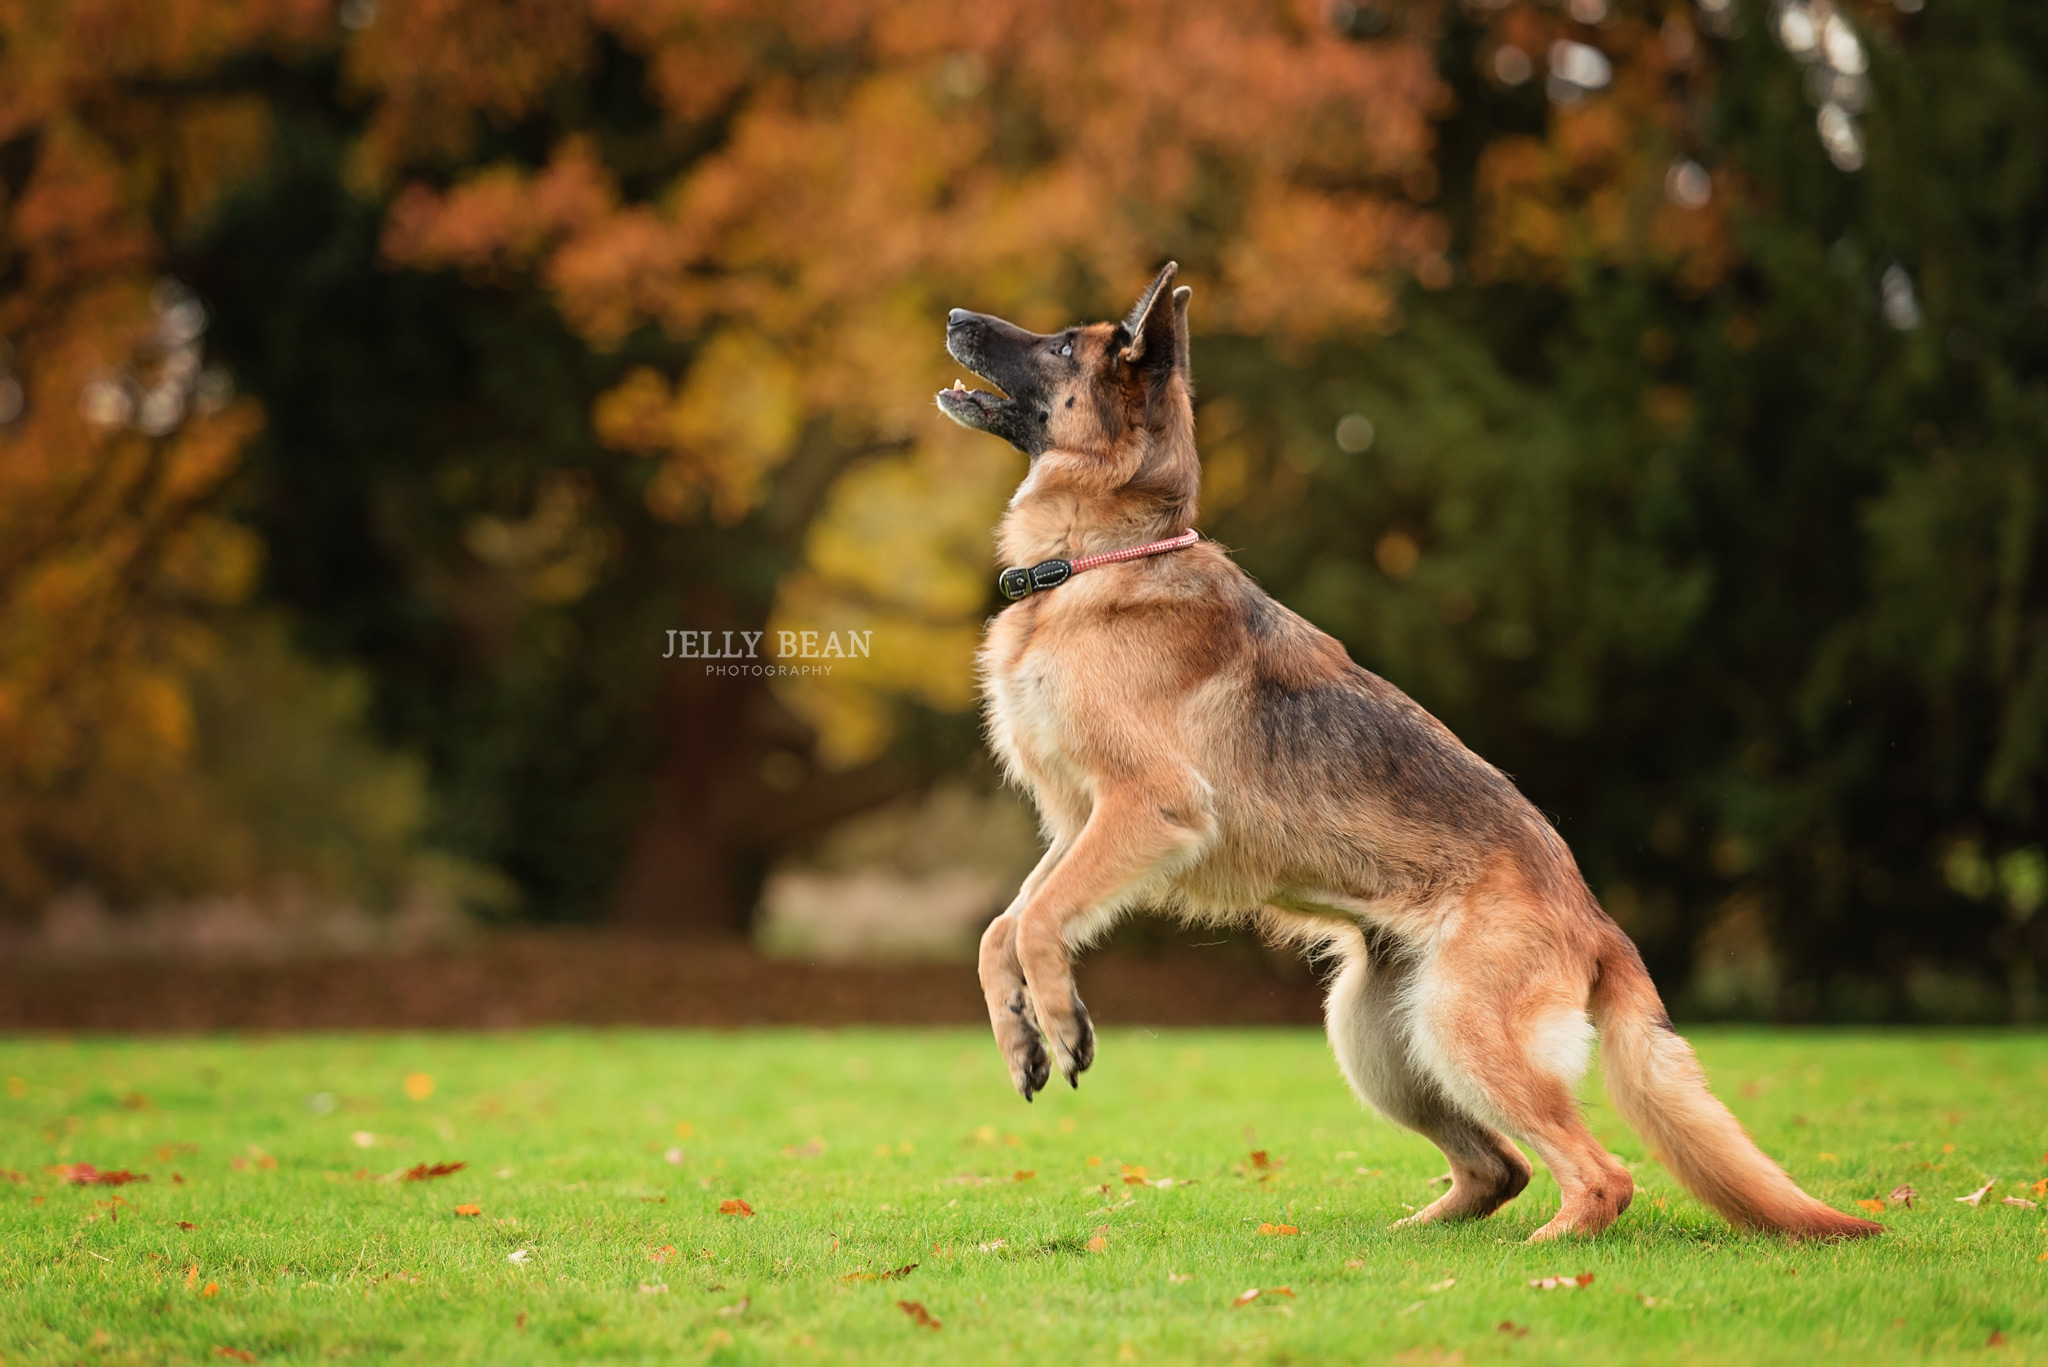 Dog jumping for ball